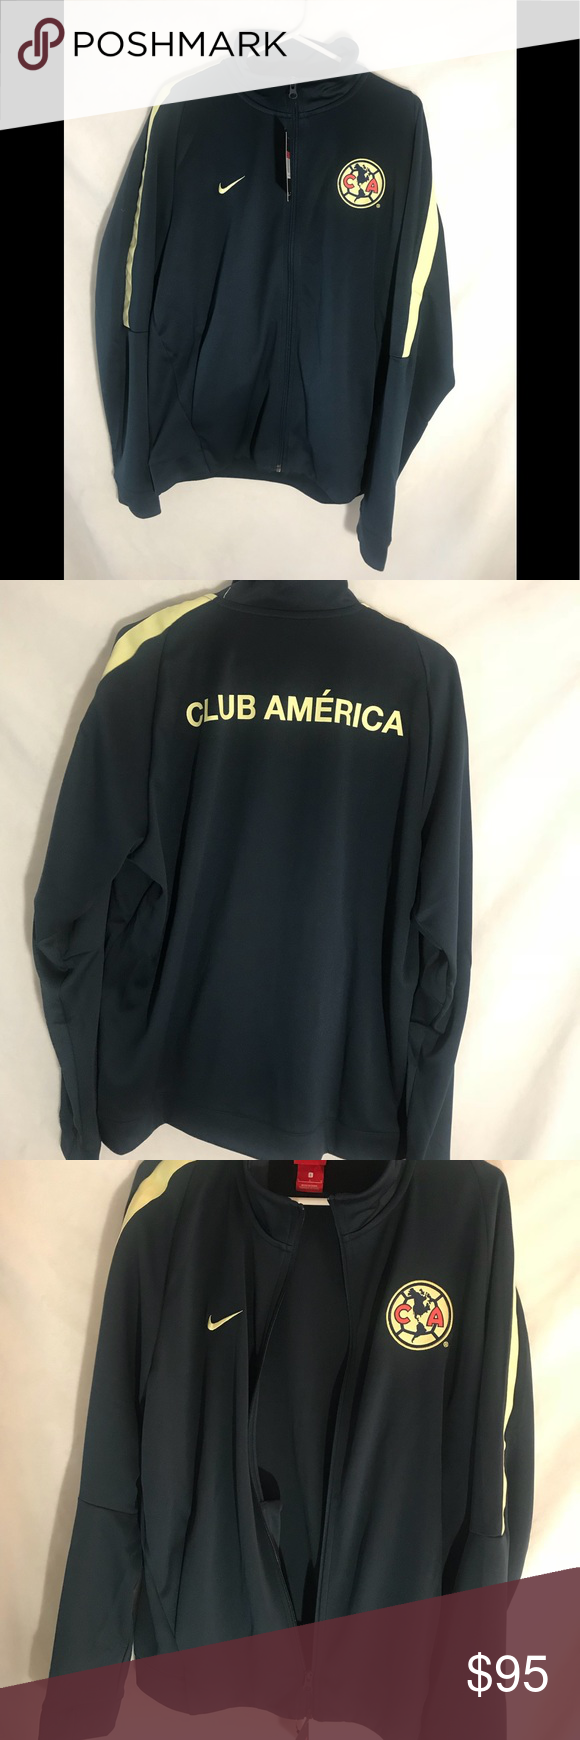 a9ef3d36497 Nike Club America Franchise Track Jacket Size L Brand New With tags See  pictures Nike Jackets & Coats Performance Jackets